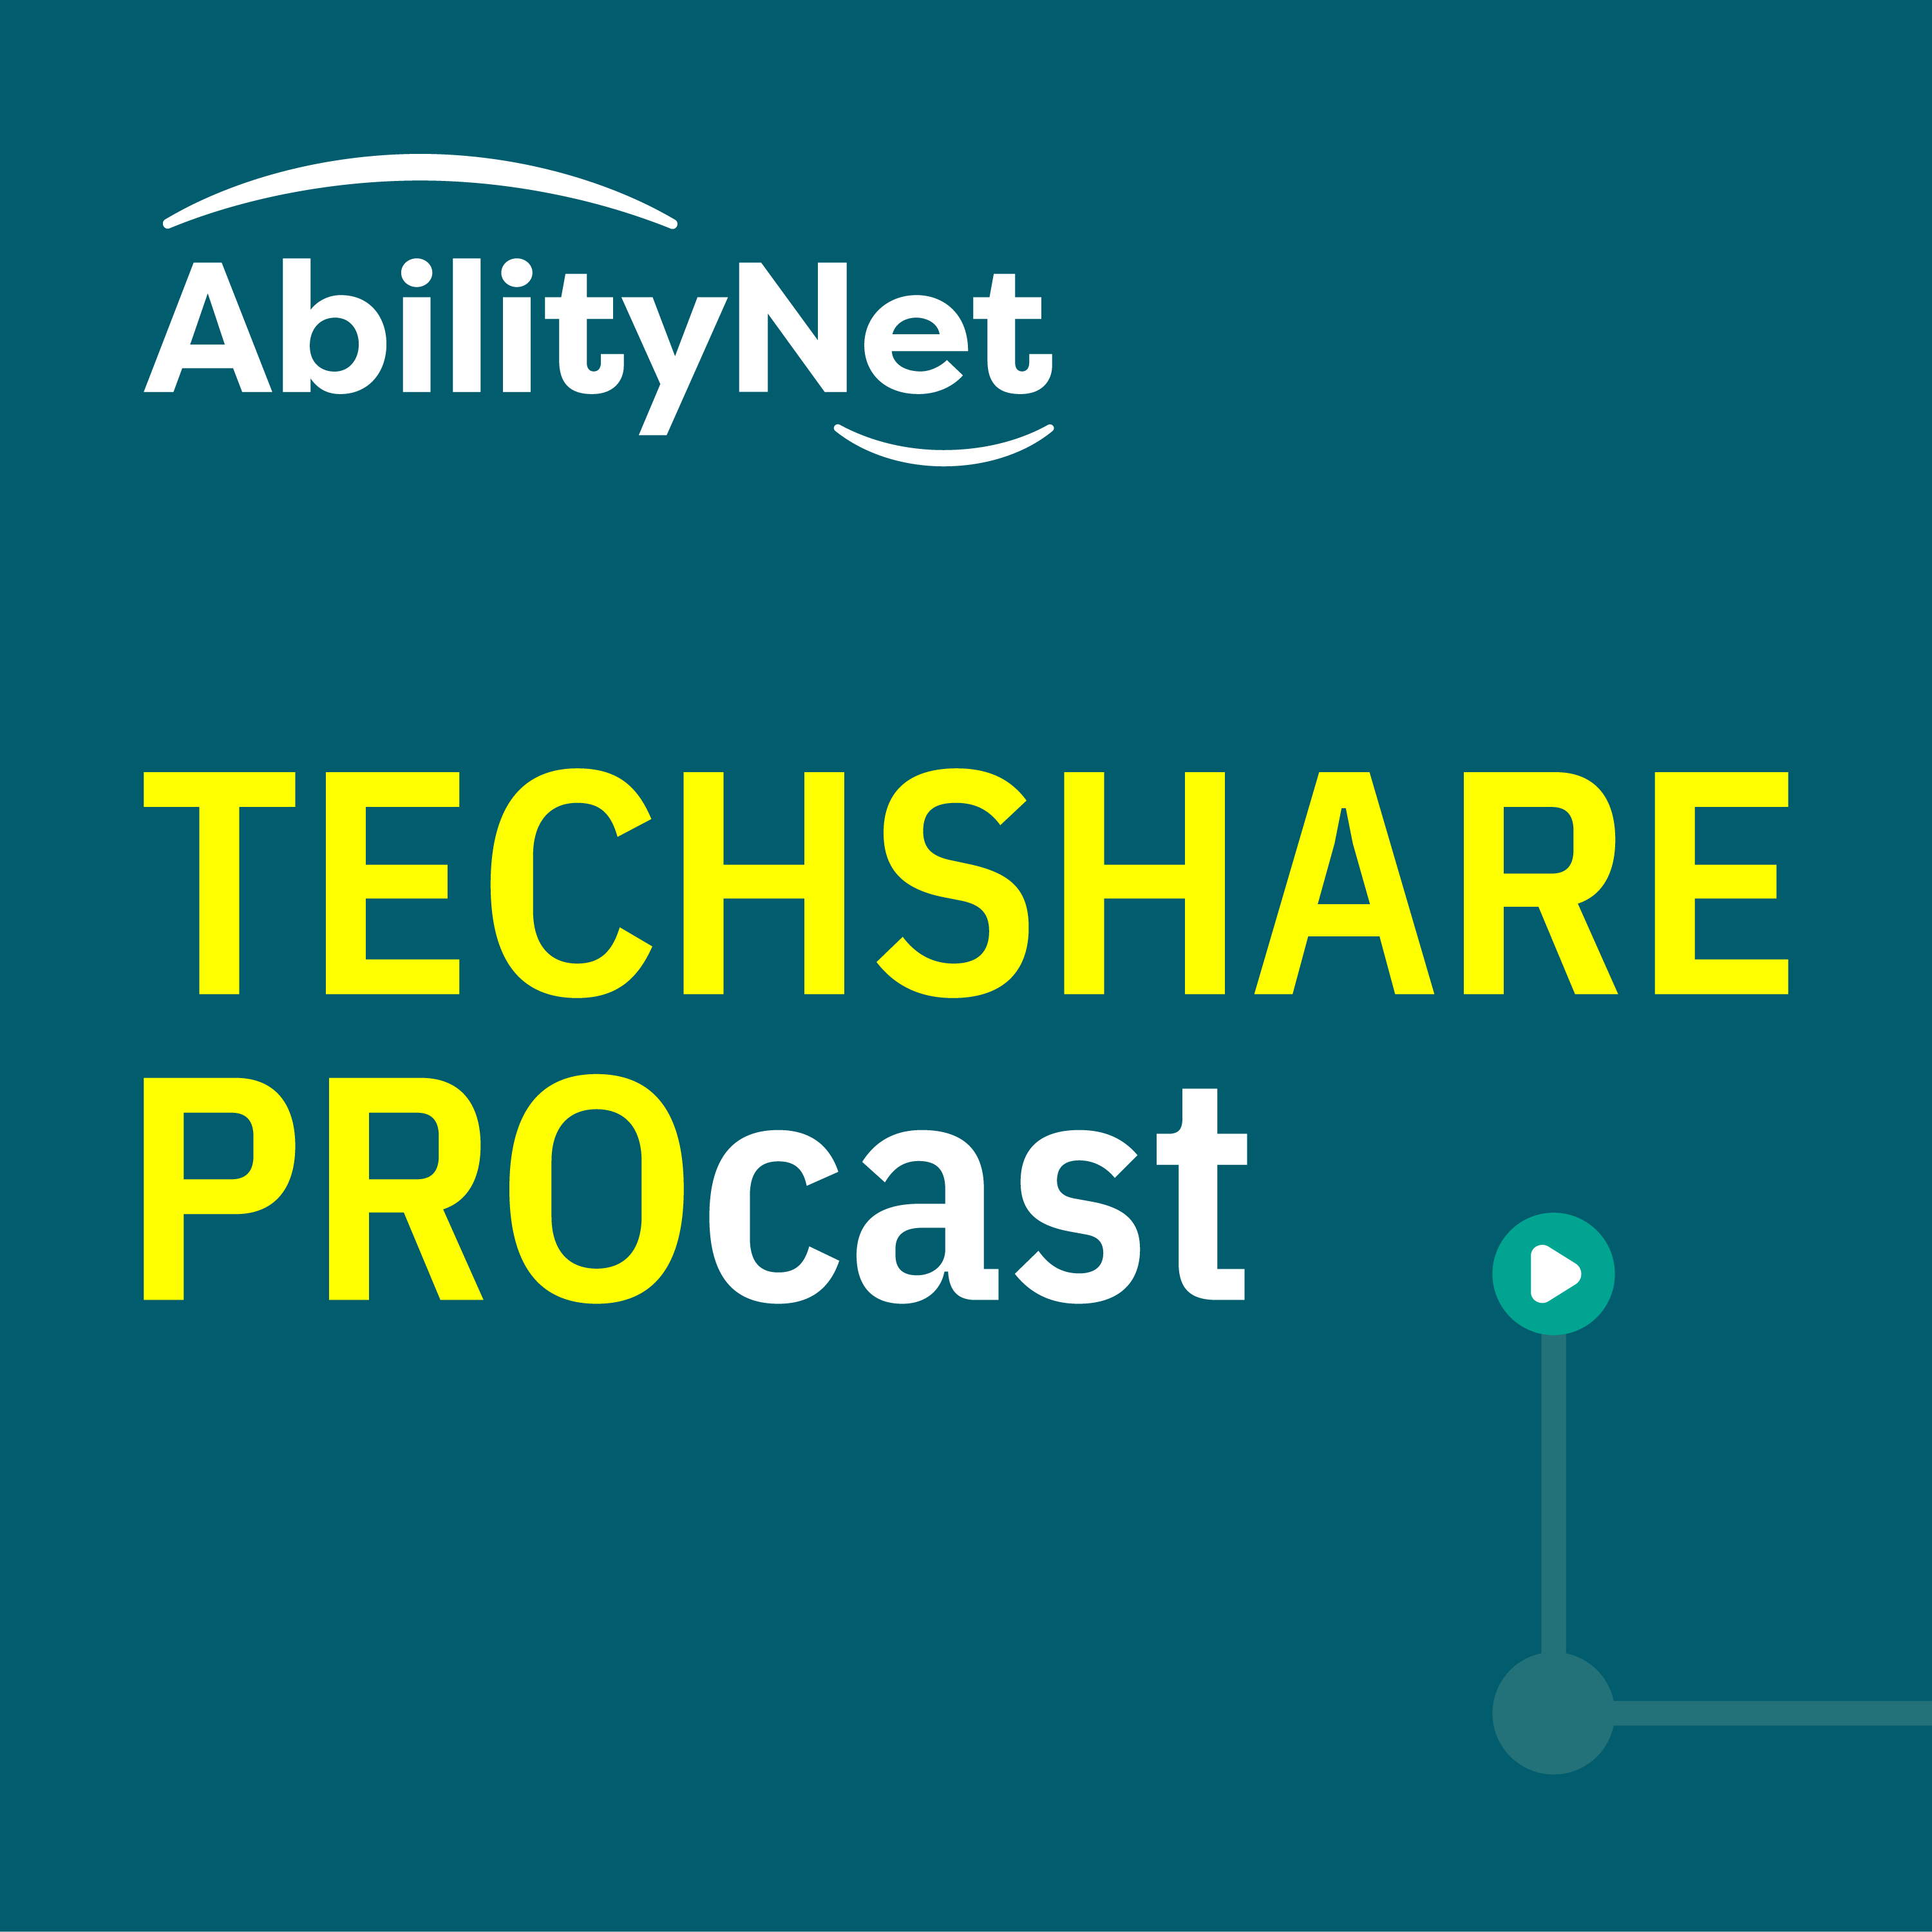 AbilityNet's The TechShare Procast